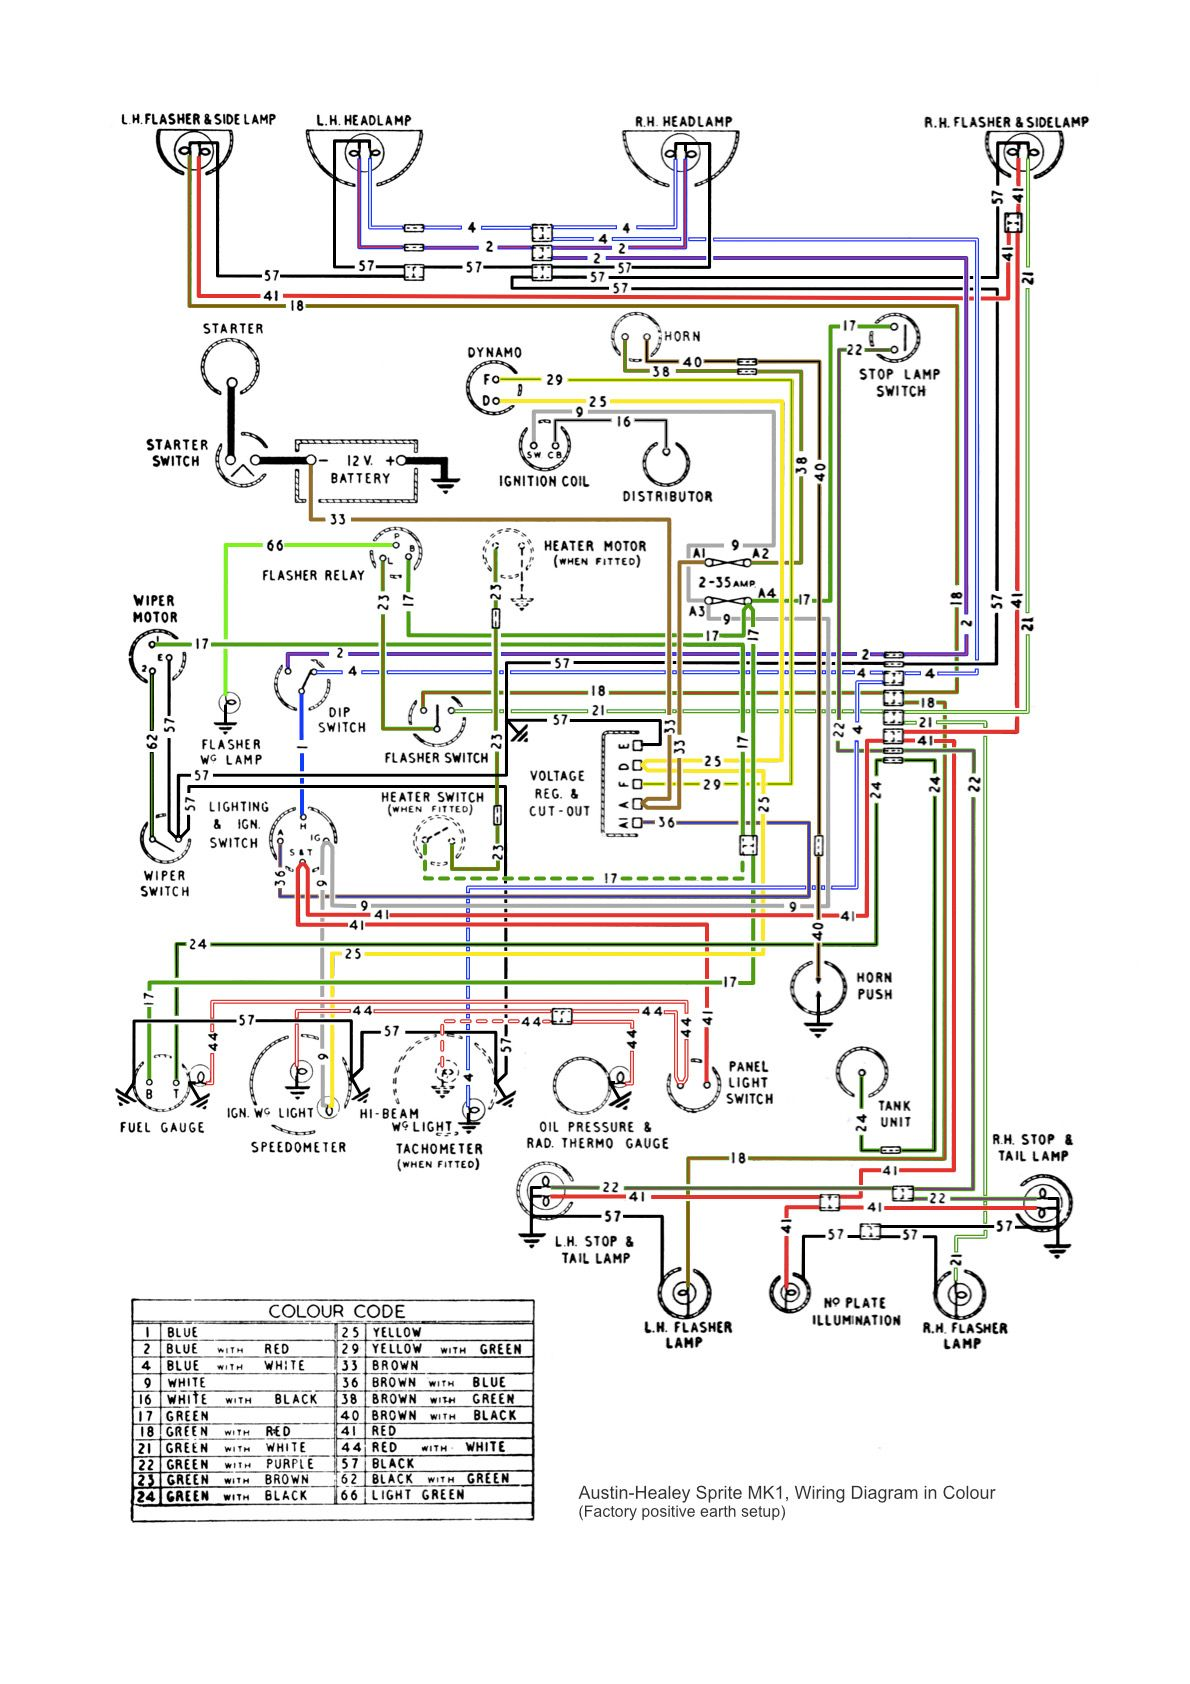 hight resolution of jaguar mk1 wiring diagram wiring diagram advance austin healey wiring diagrams wiring diagrams mon jaguar mk1